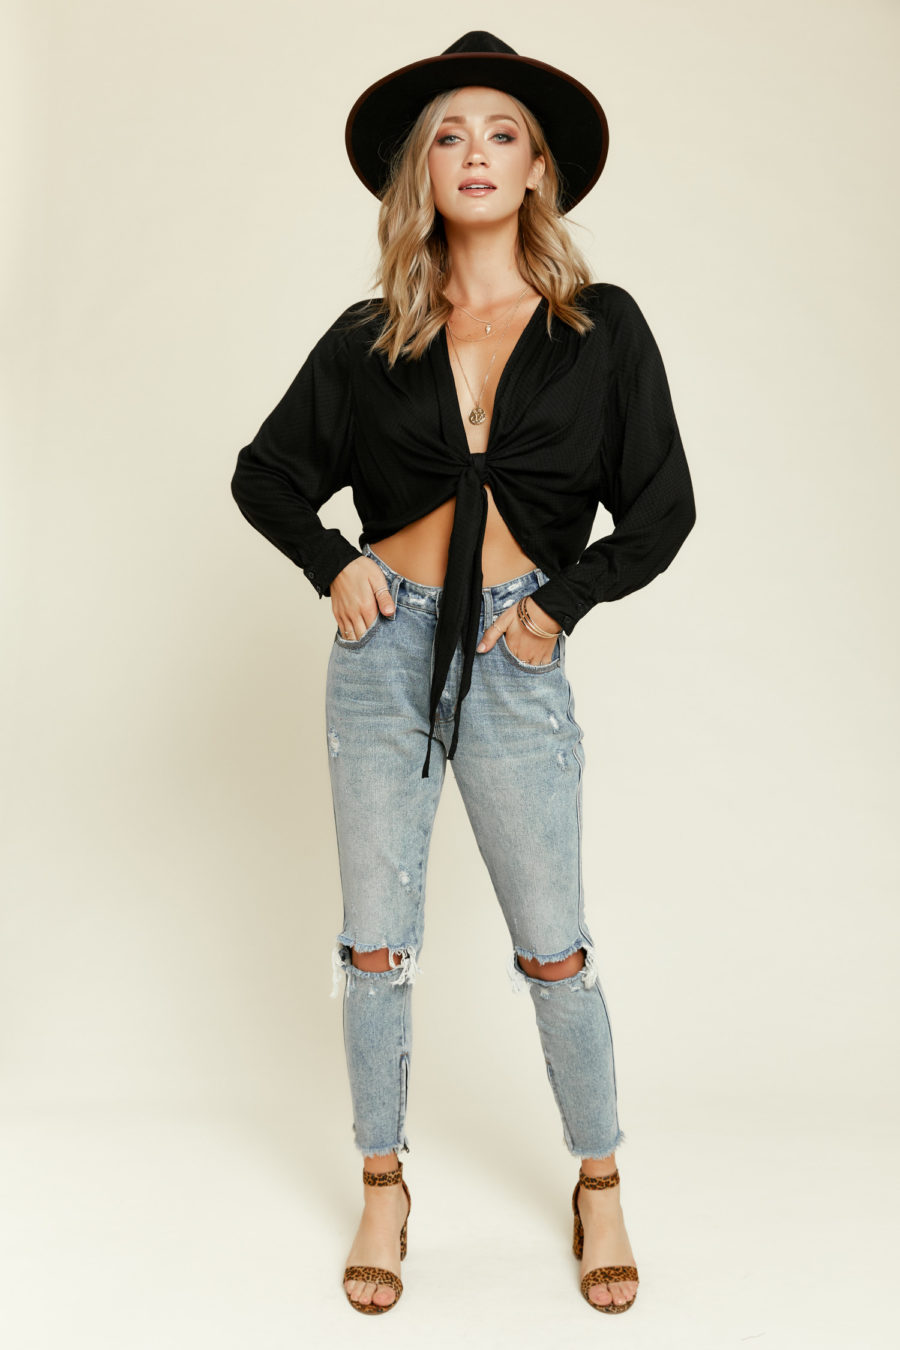 Away for the Week Wrap Top